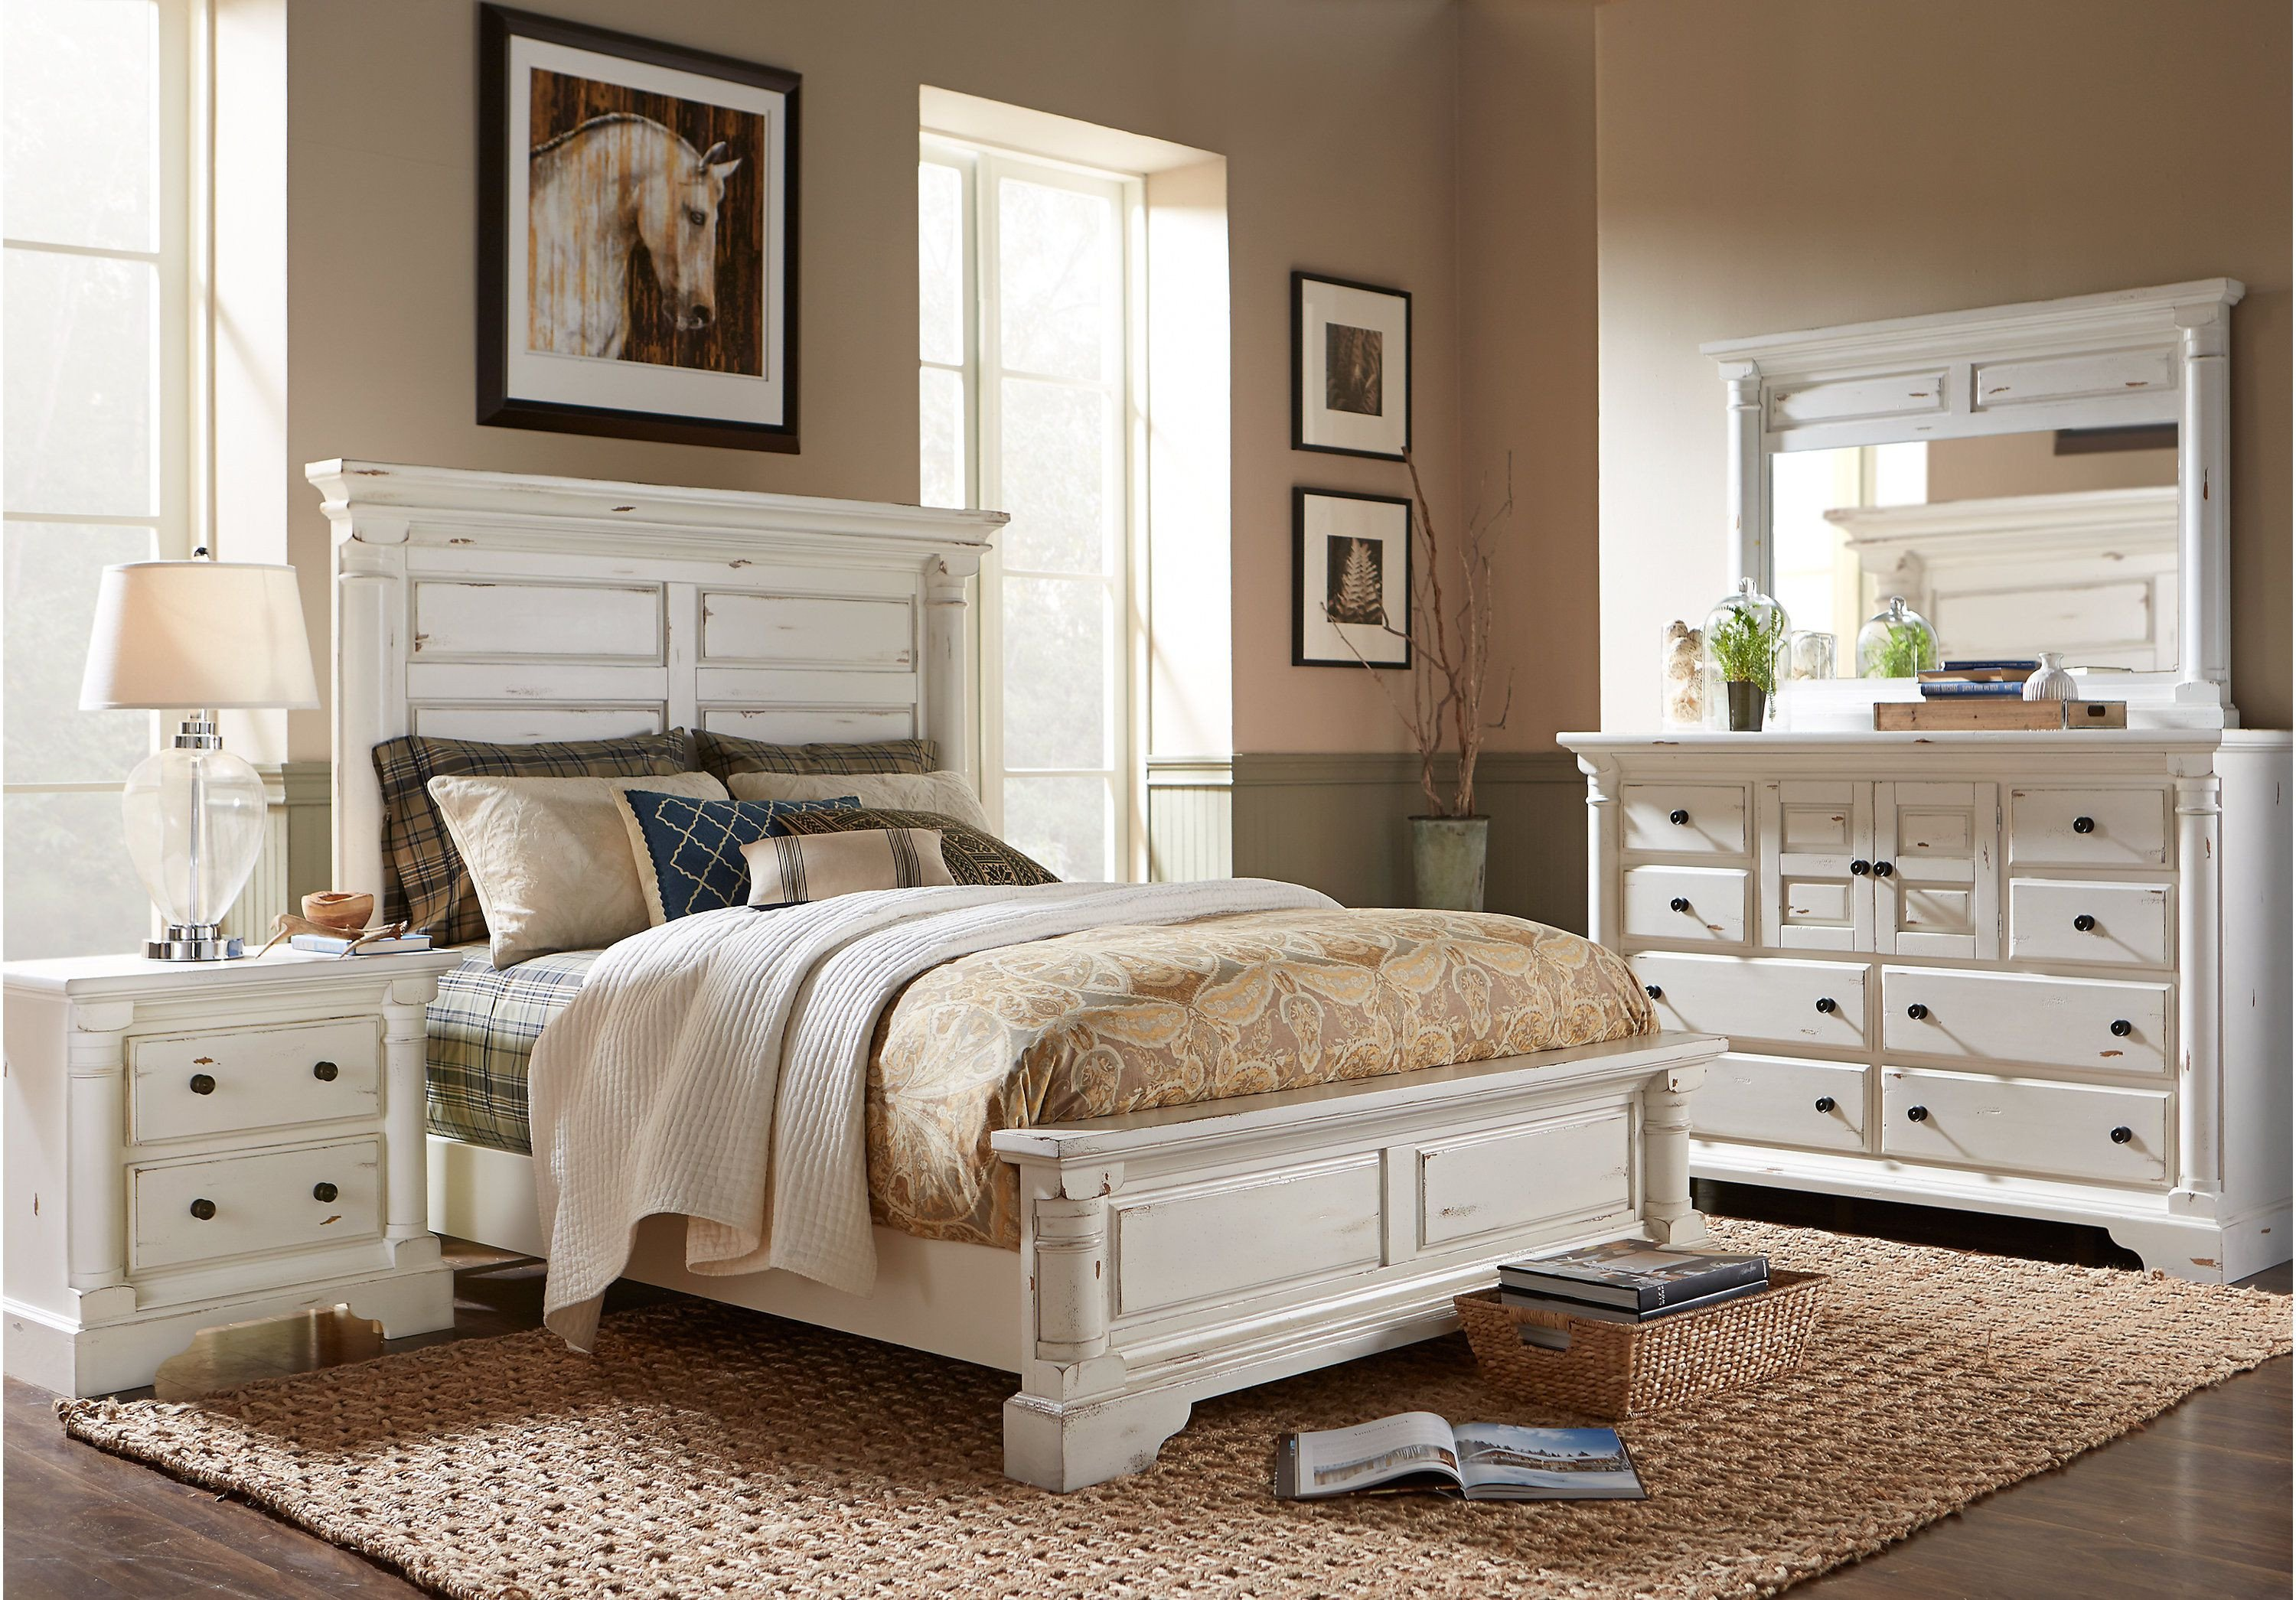 Bedroom Furniture Sale Clearance Fresh Furniture Captivating Bobs Furniture Clearance and Cozy